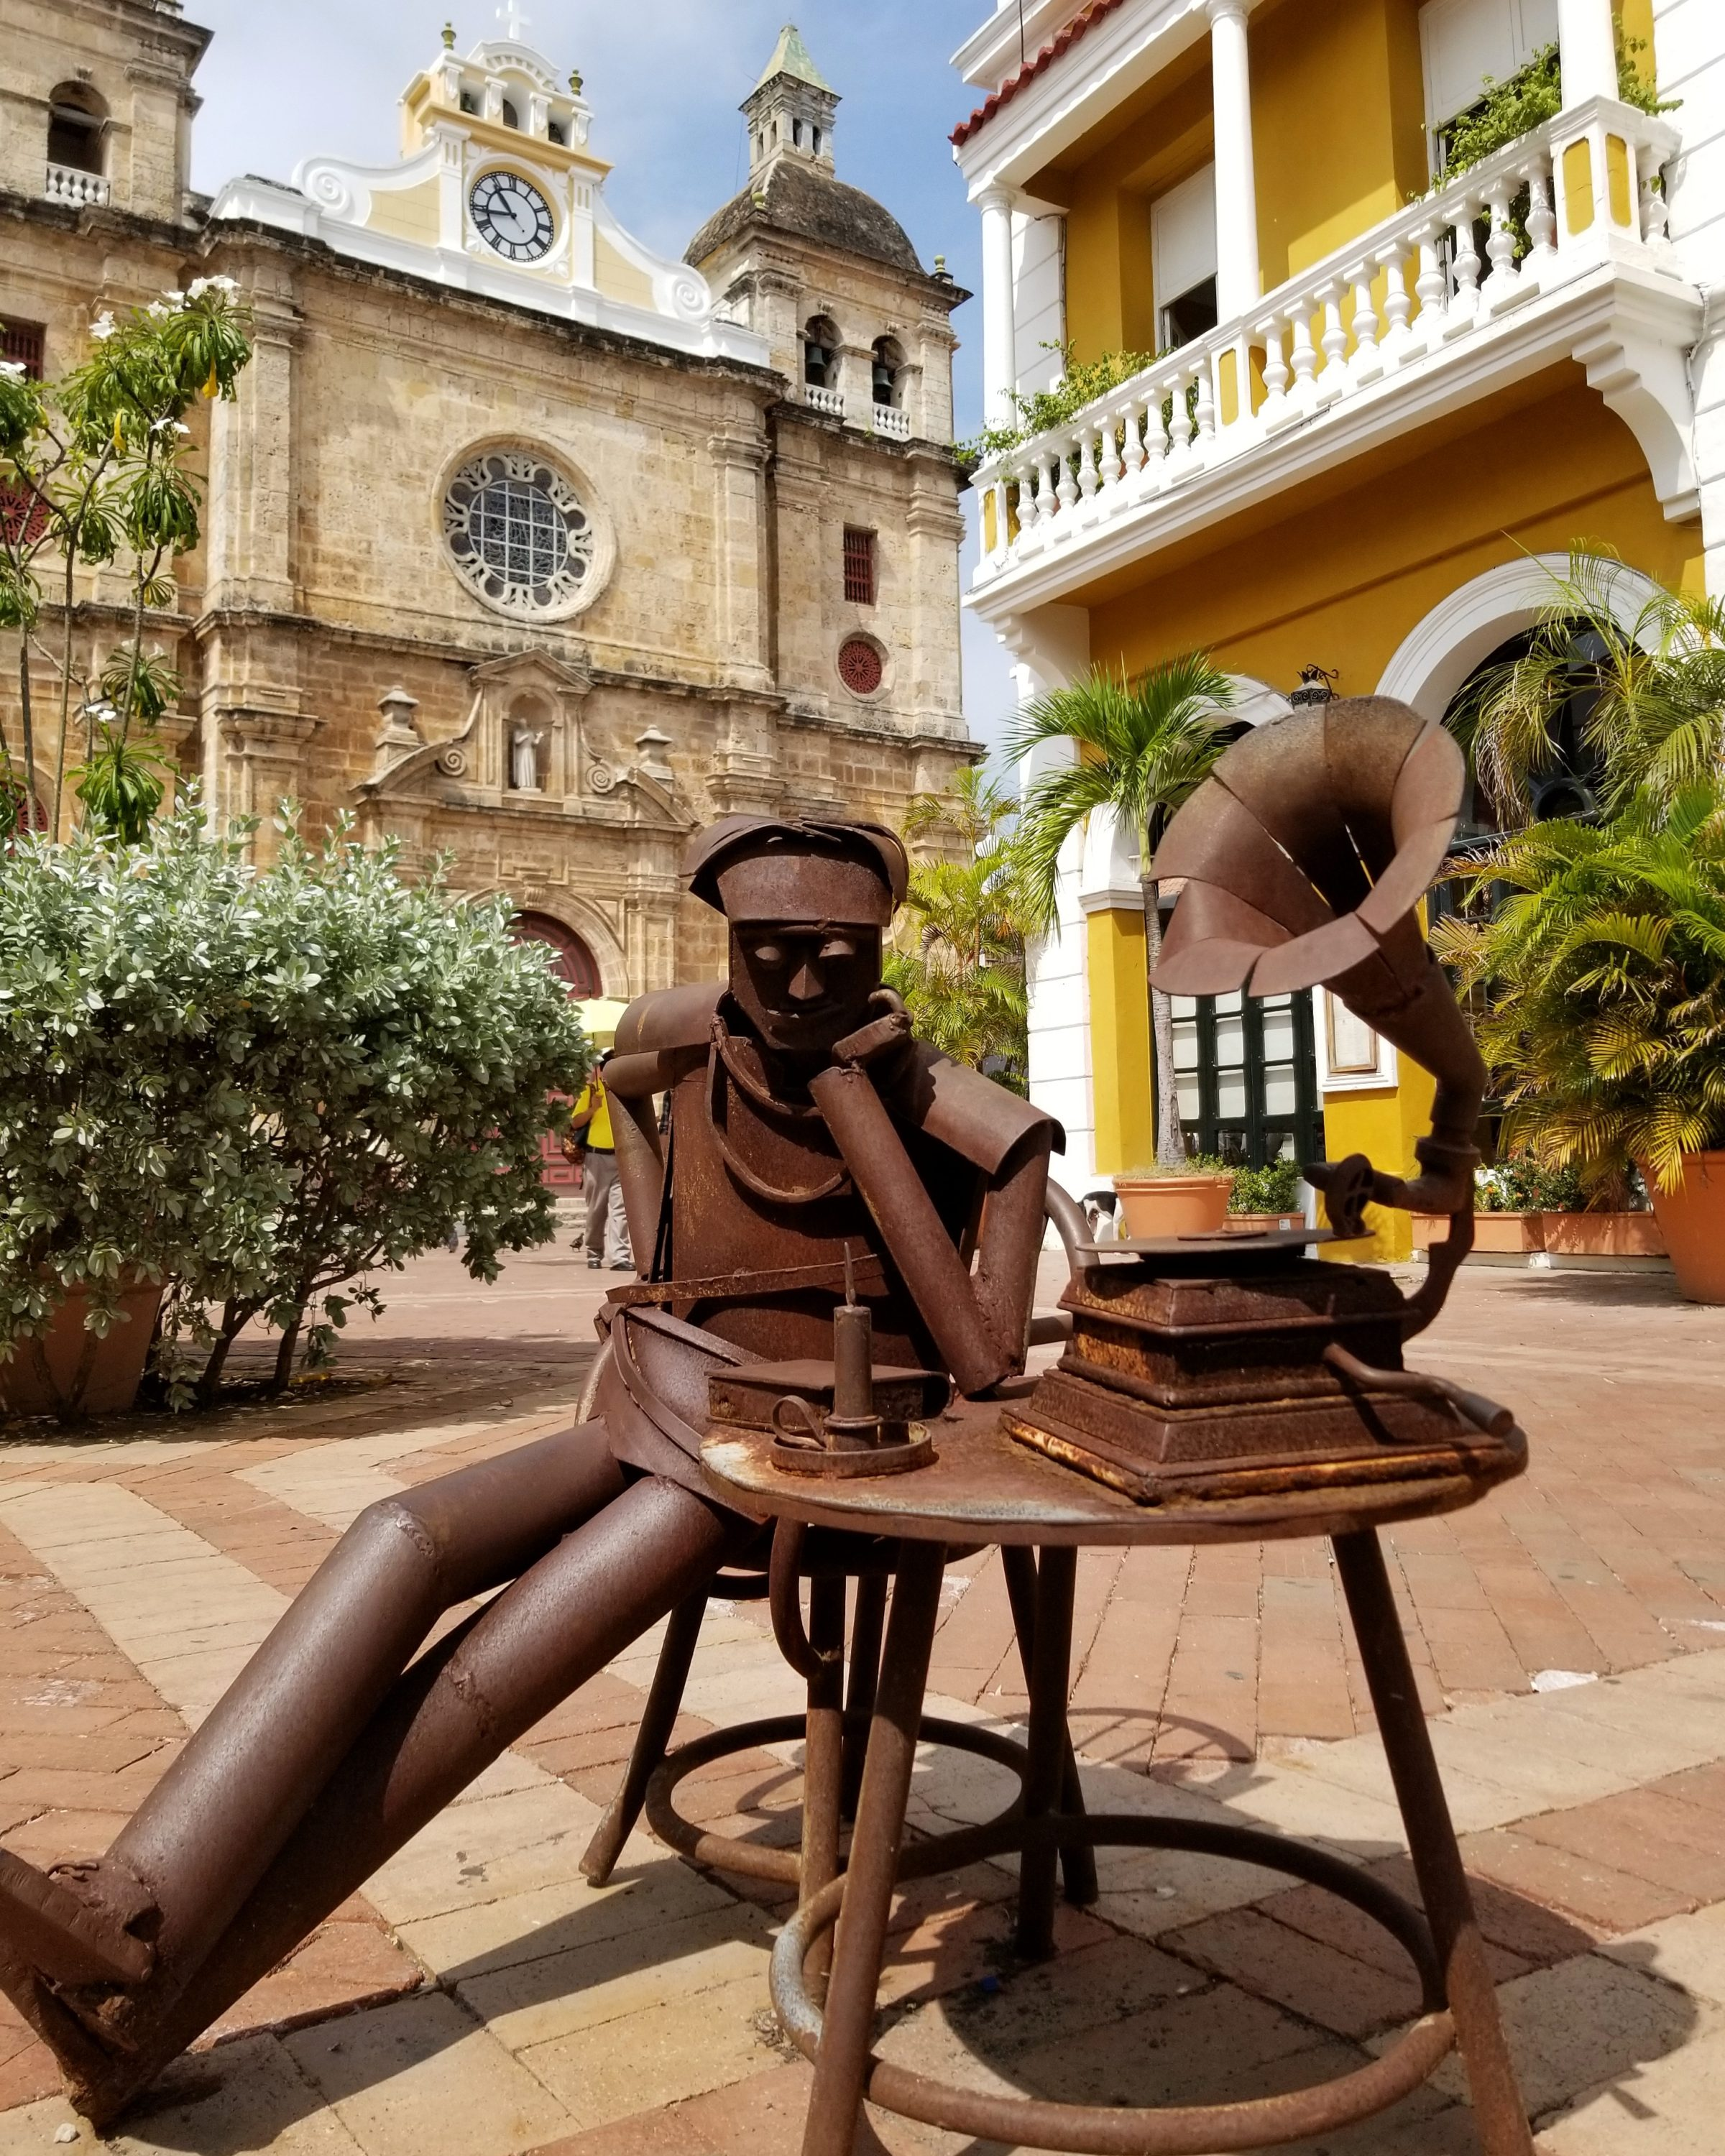 Strolling through the sculptures of daily life was one of our favorite free things to do in Cartagena